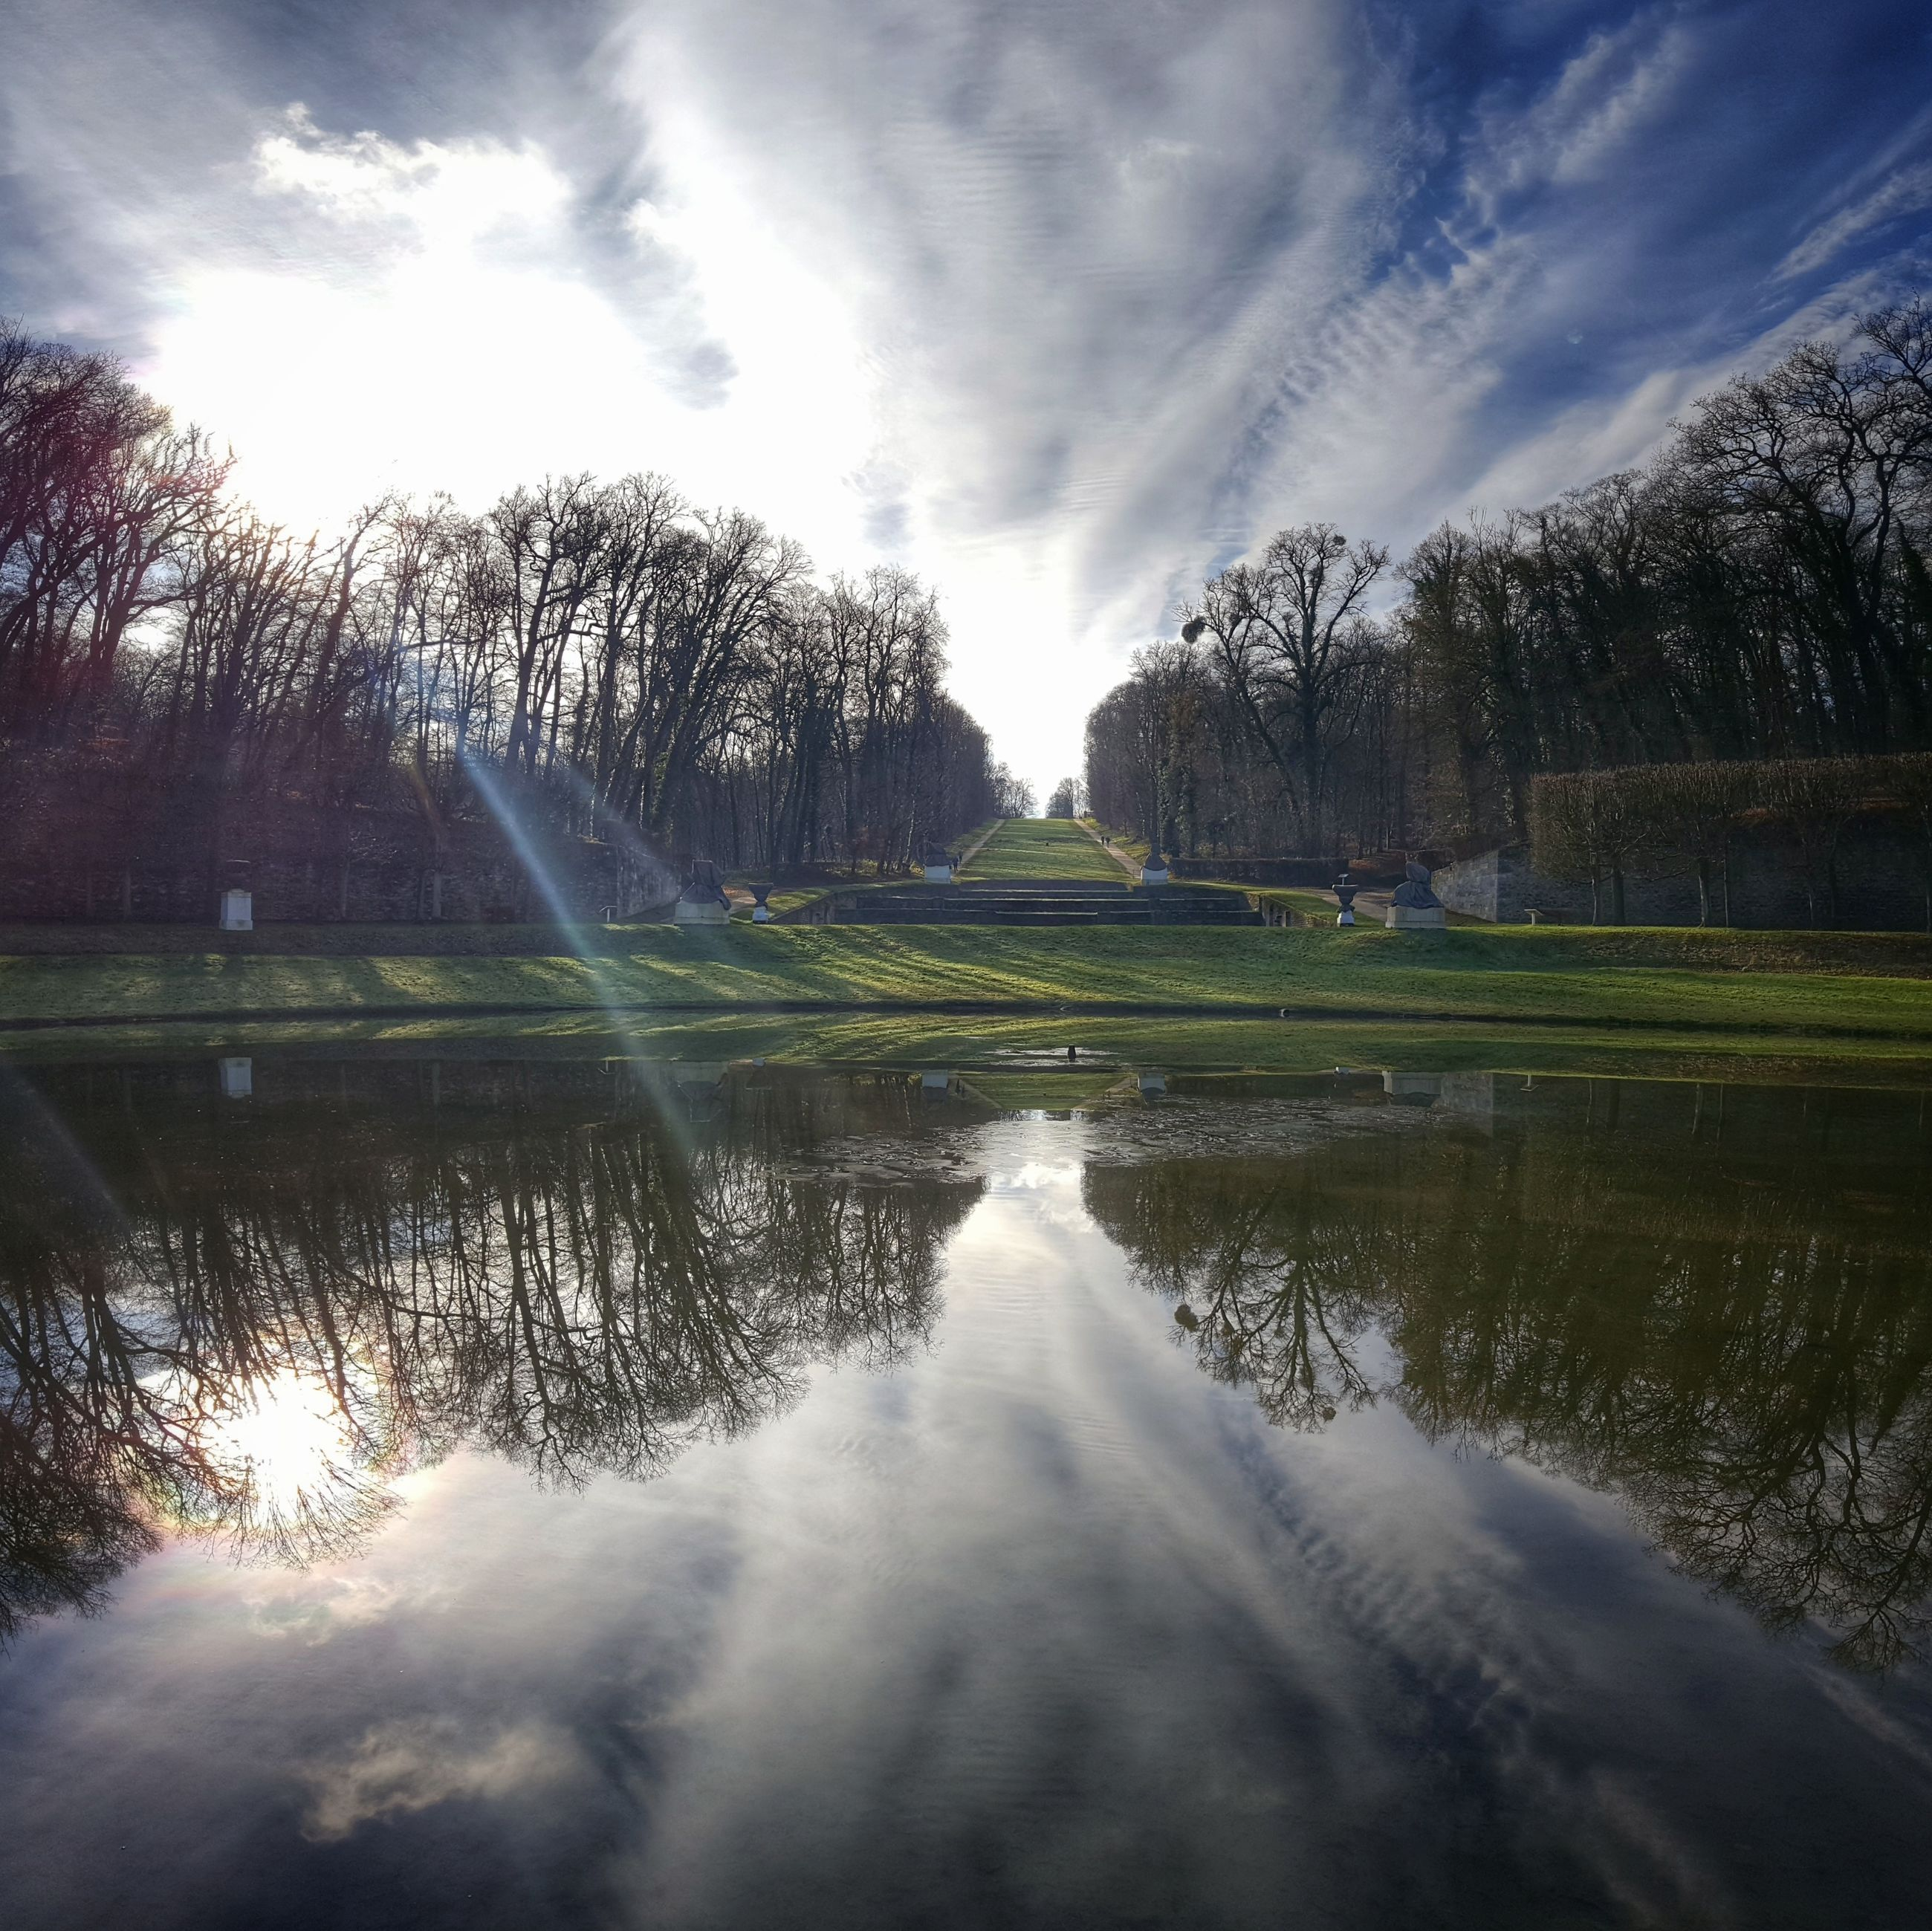 water, reflection, scenics, sky, nature, cloud - sky, beauty in nature, outdoors, tranquil scene, tranquility, lake, motion, day, no people, travel destinations, tree, long exposure, grass, golf course